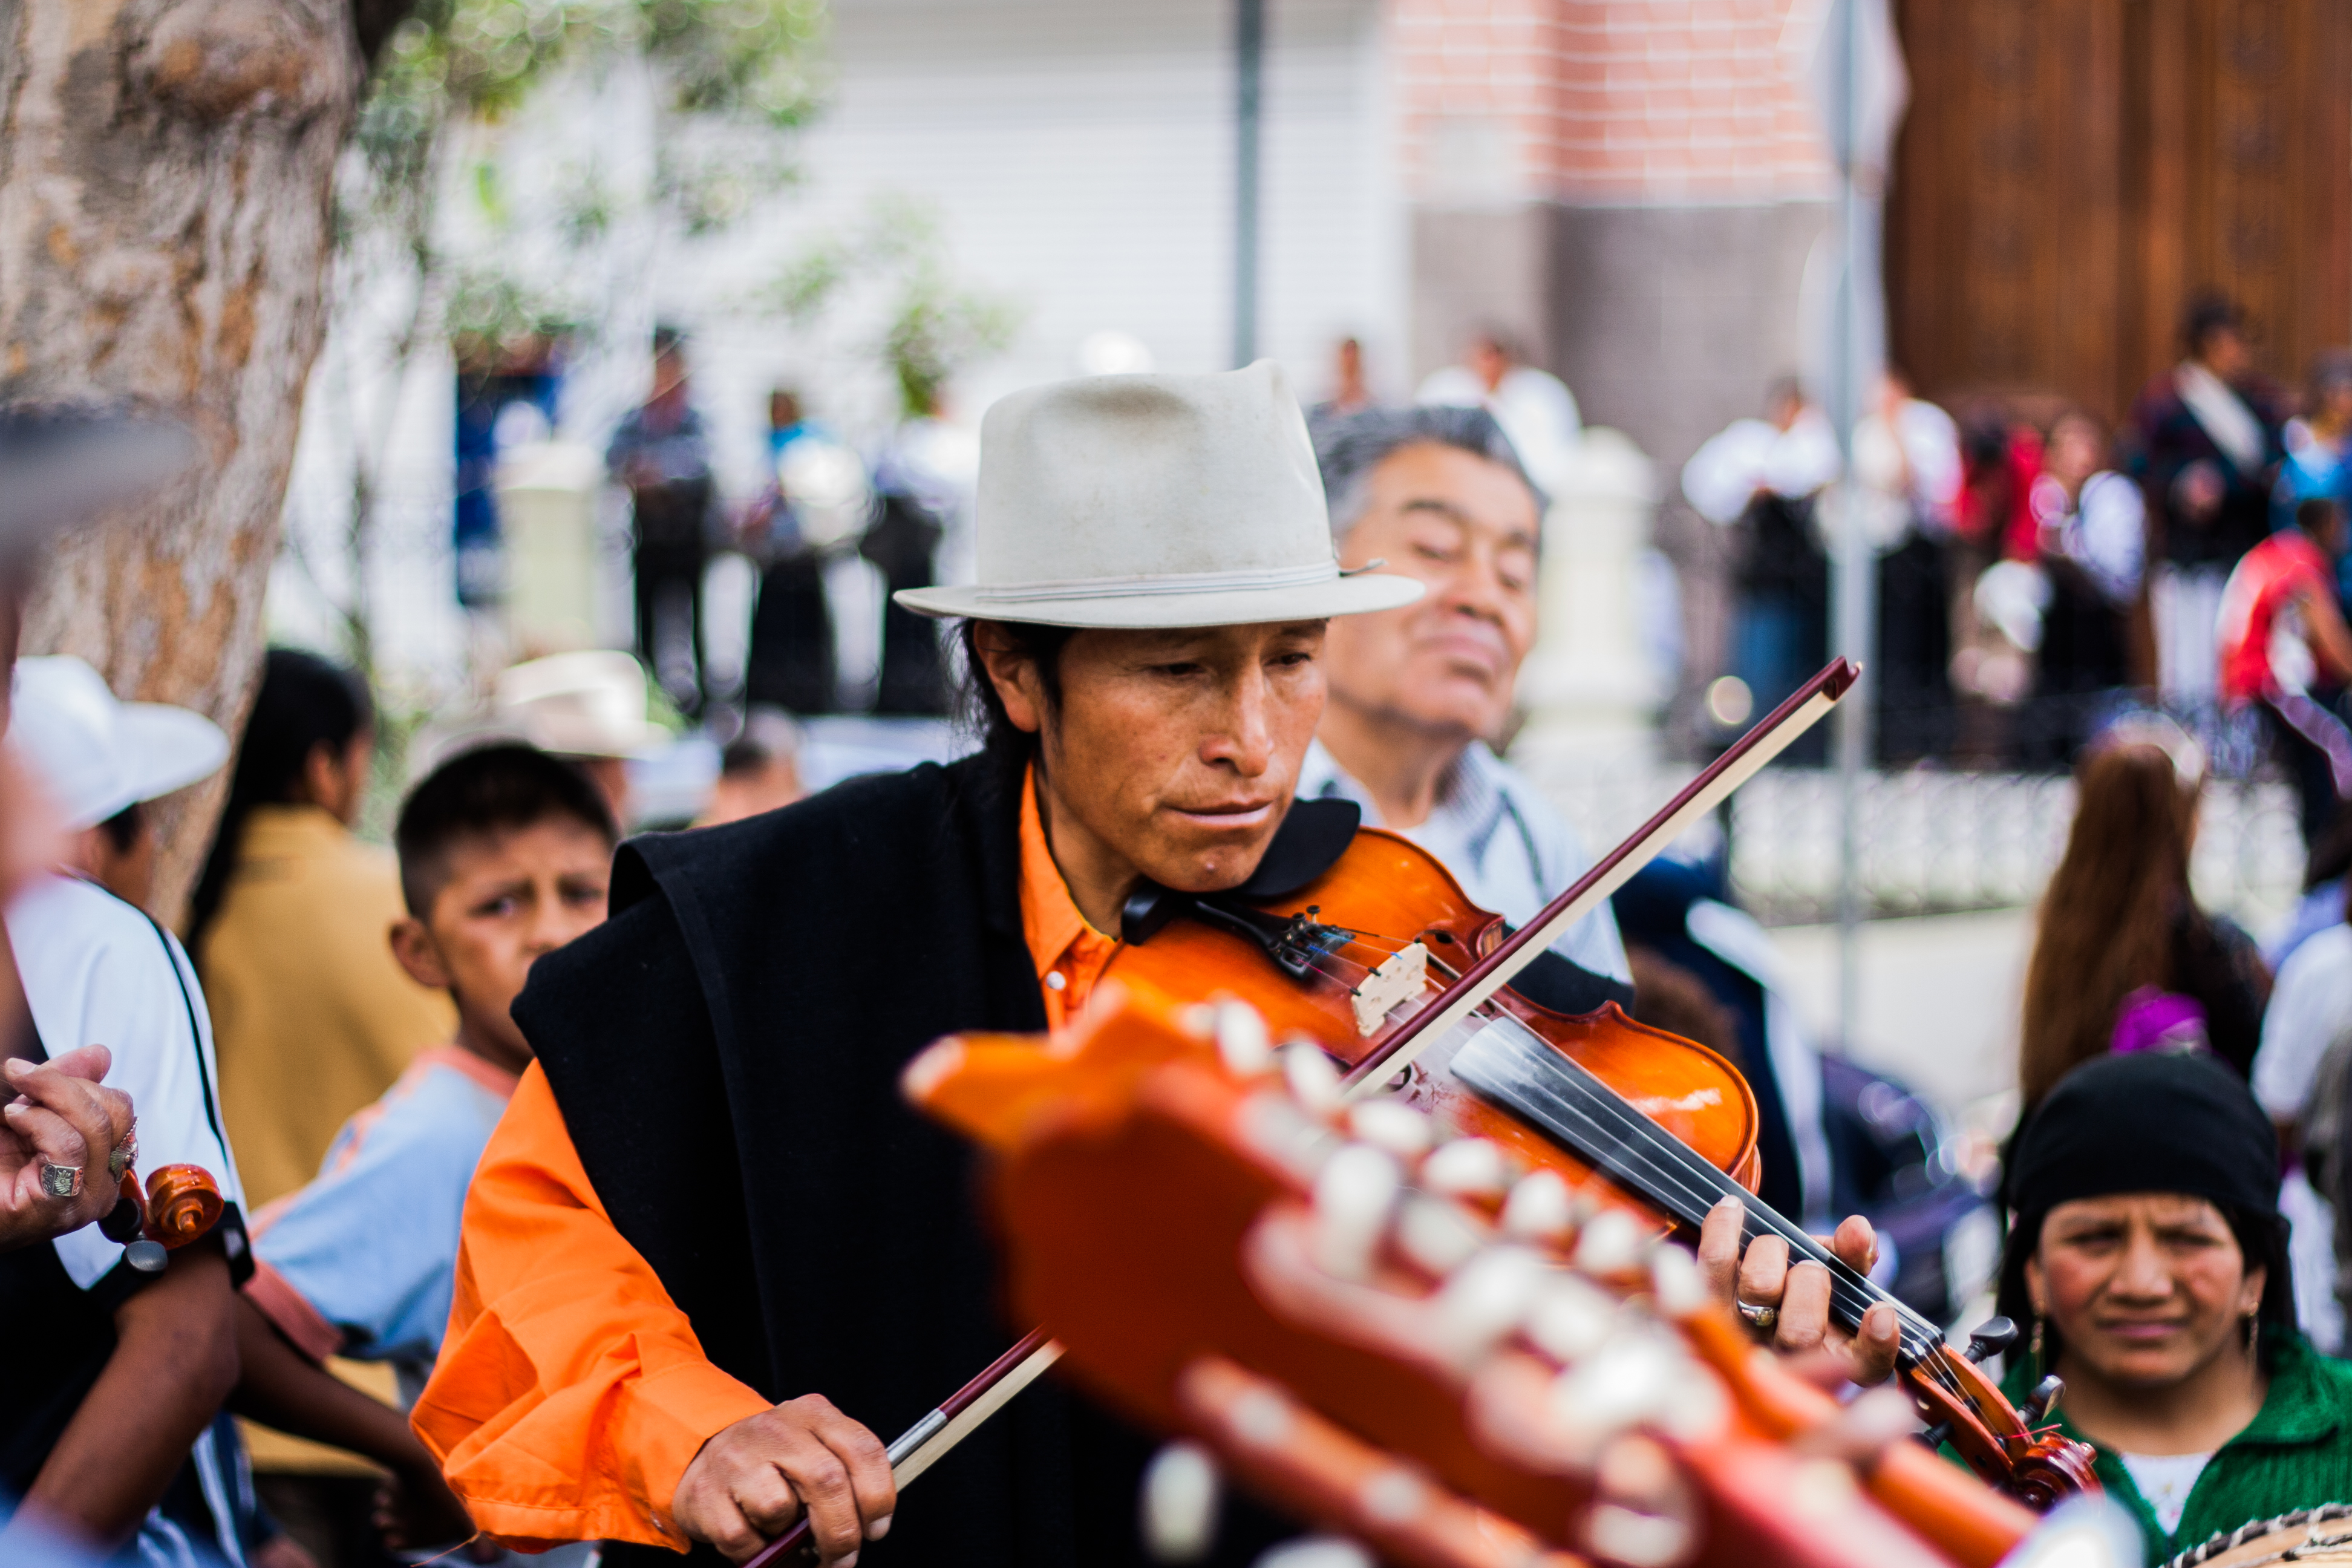 Violinist, Violin, People, Activity, Human, HQ Photo